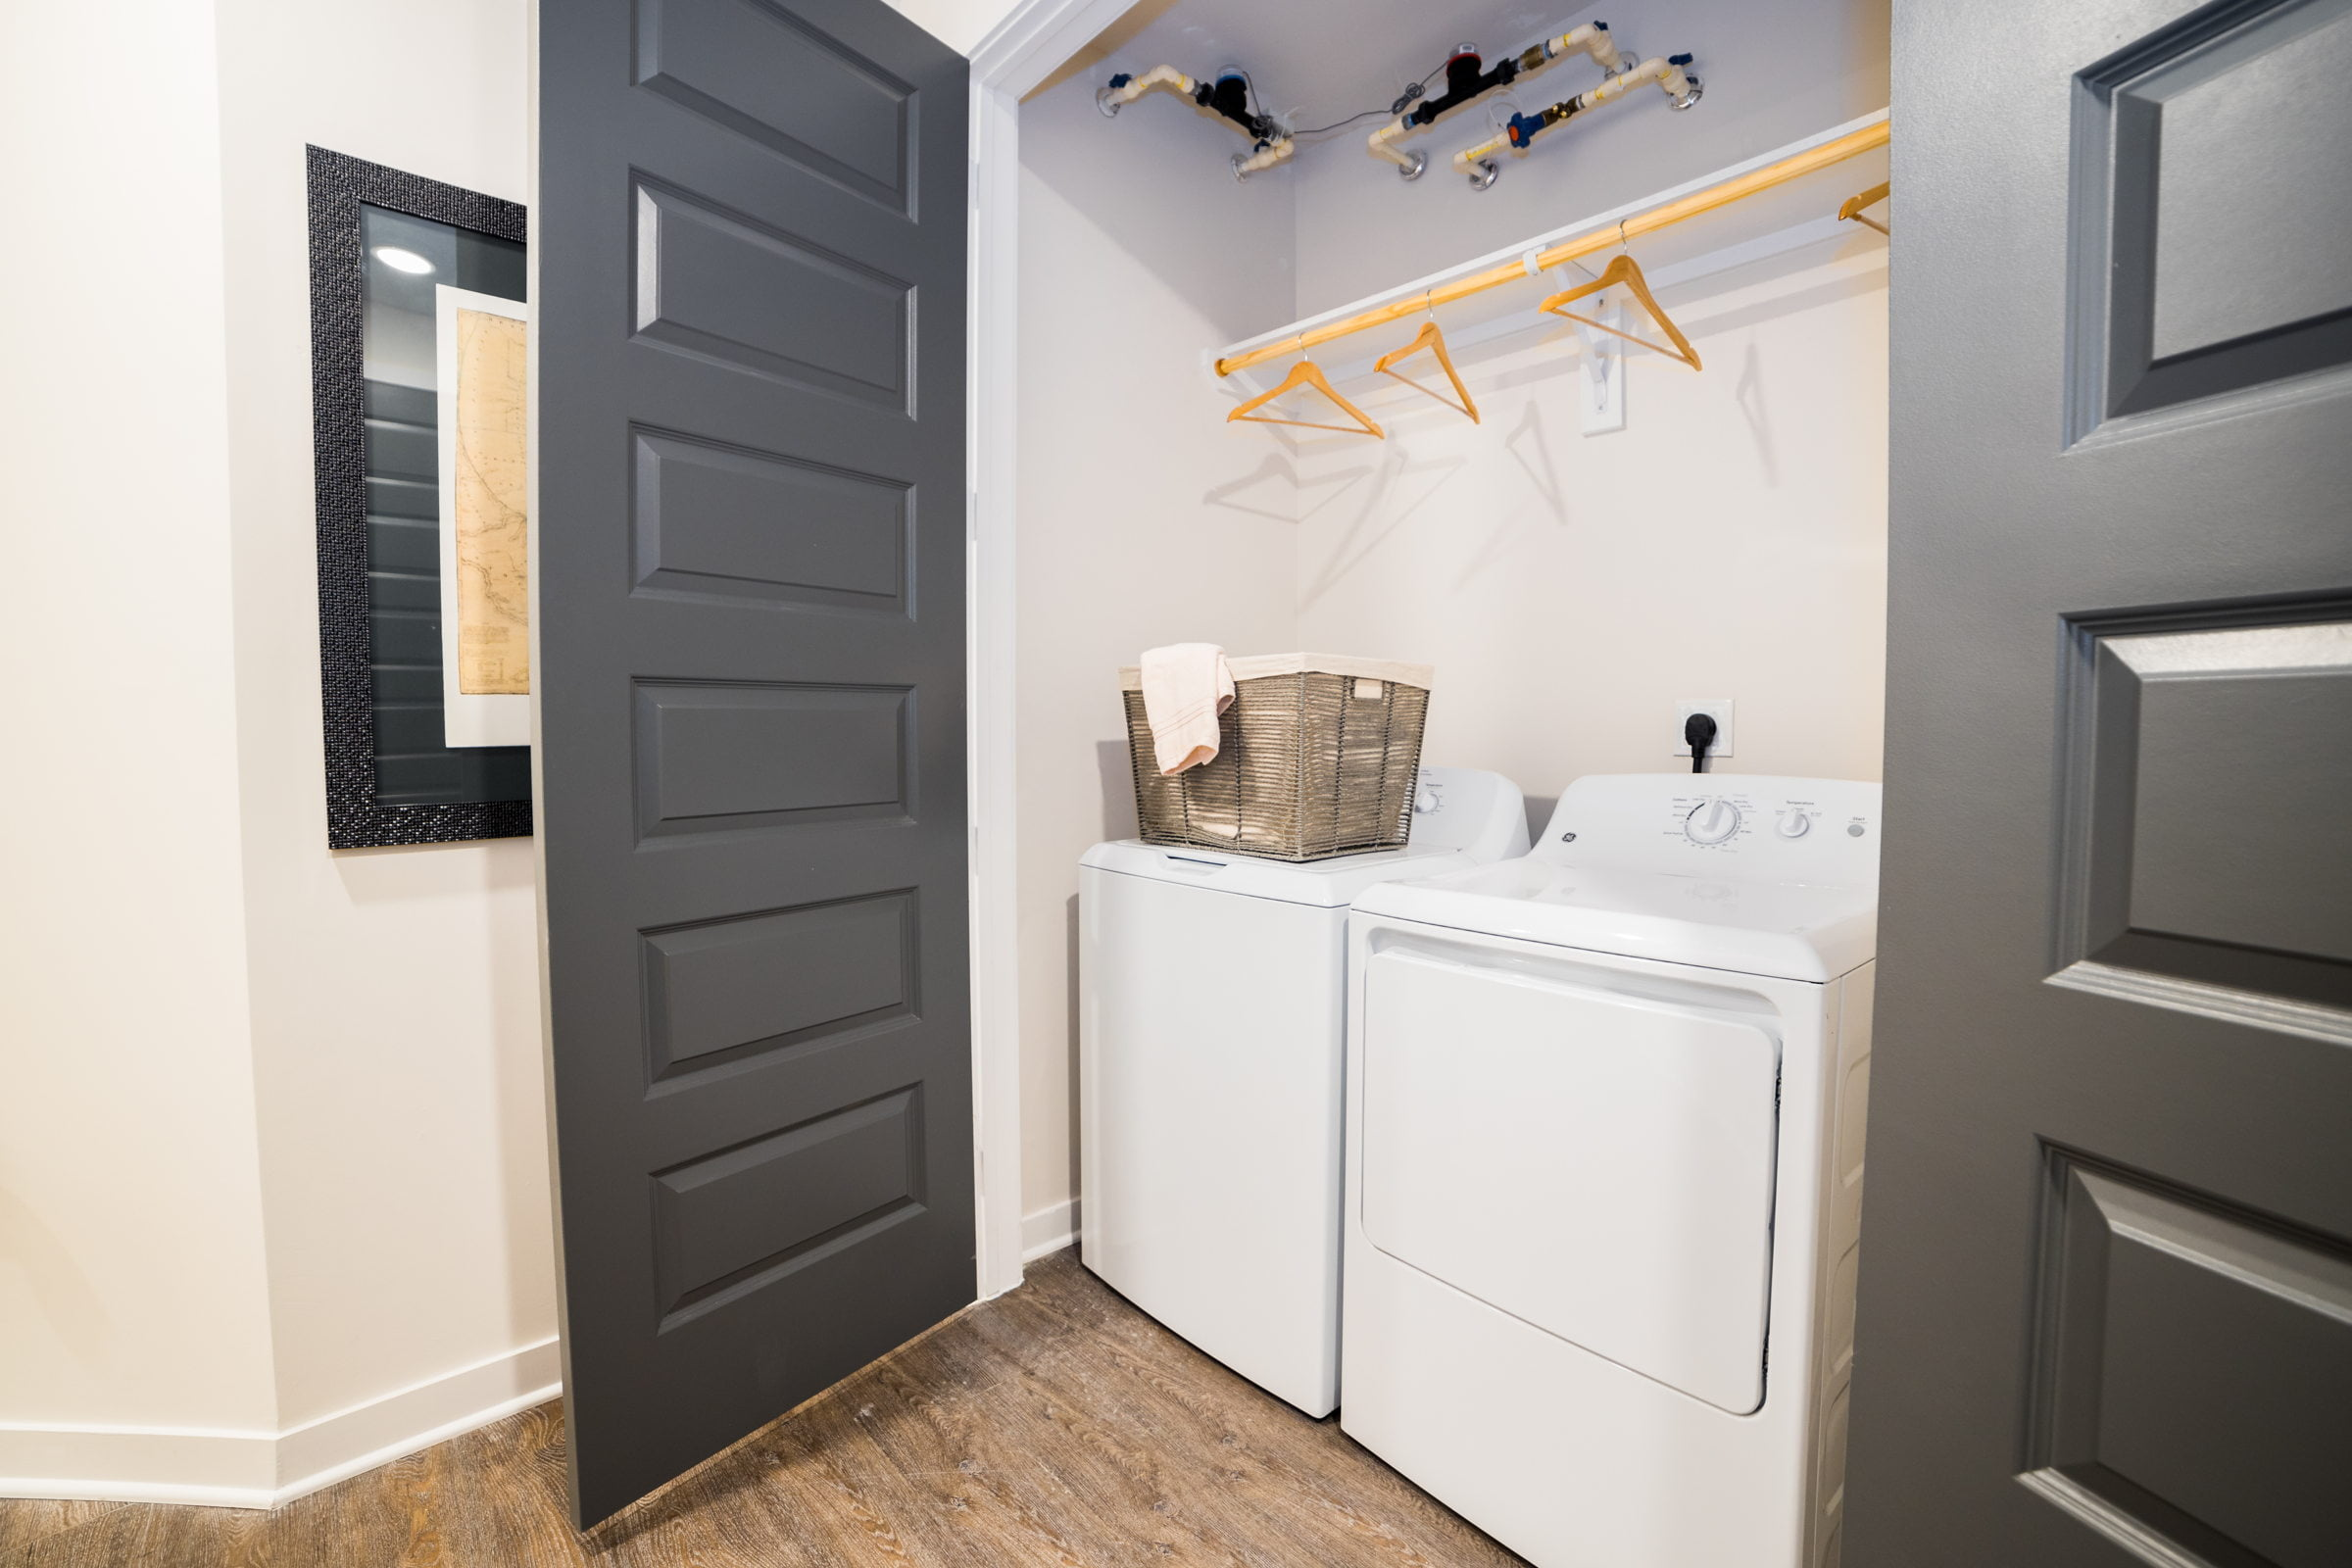 apartments in dallas with washer and dryer included